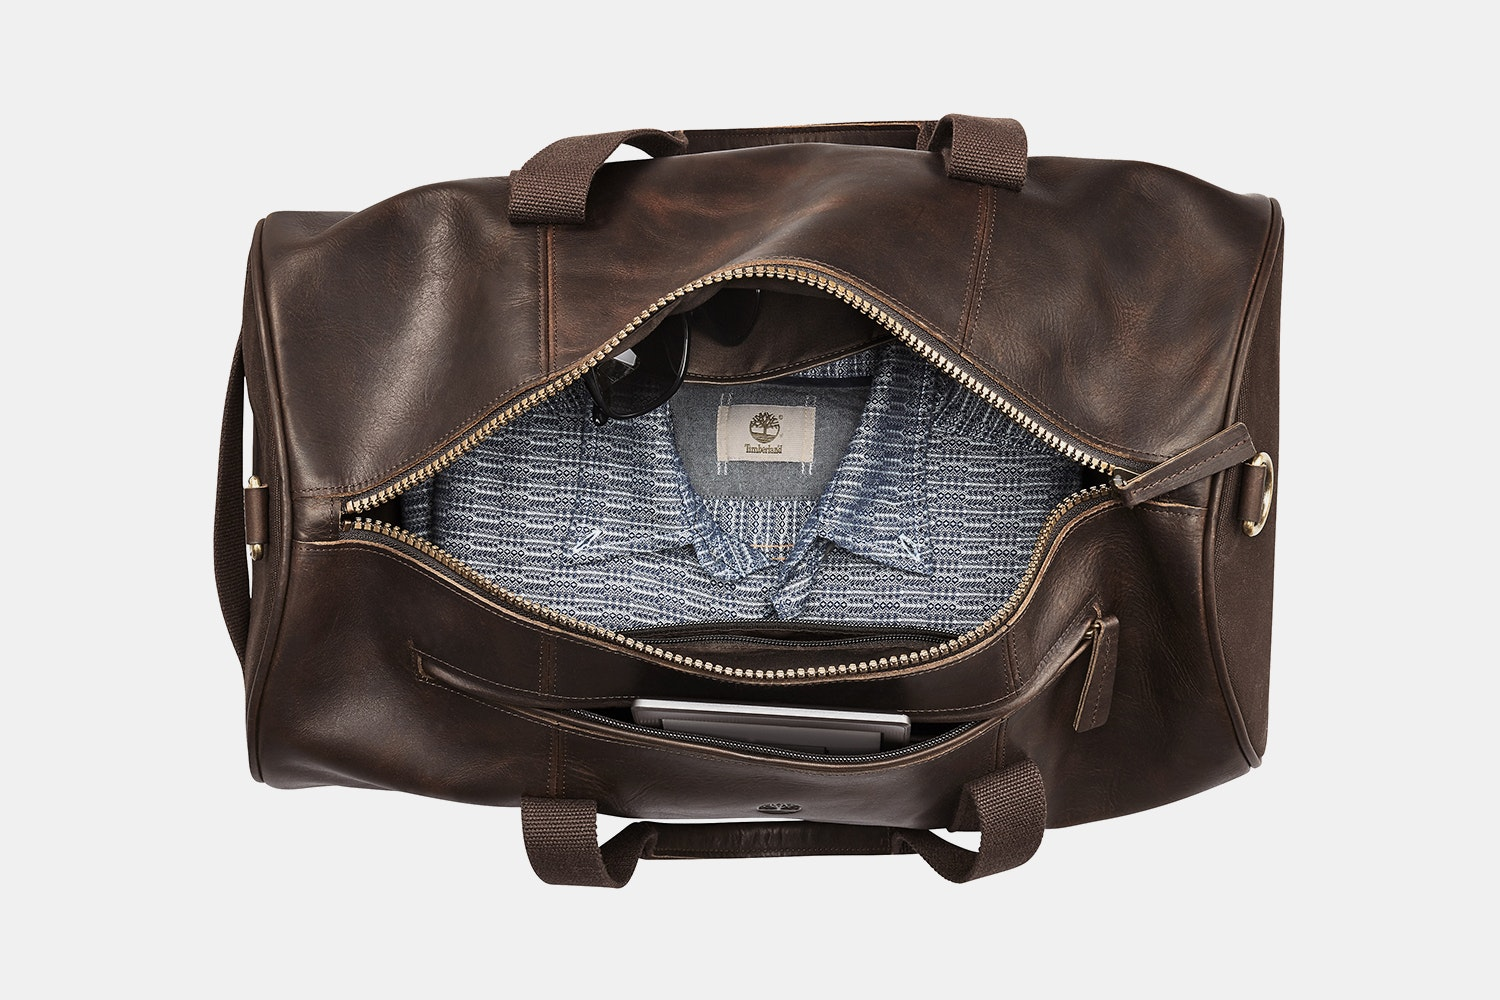 Timberland Tuckerman Duffel Bag